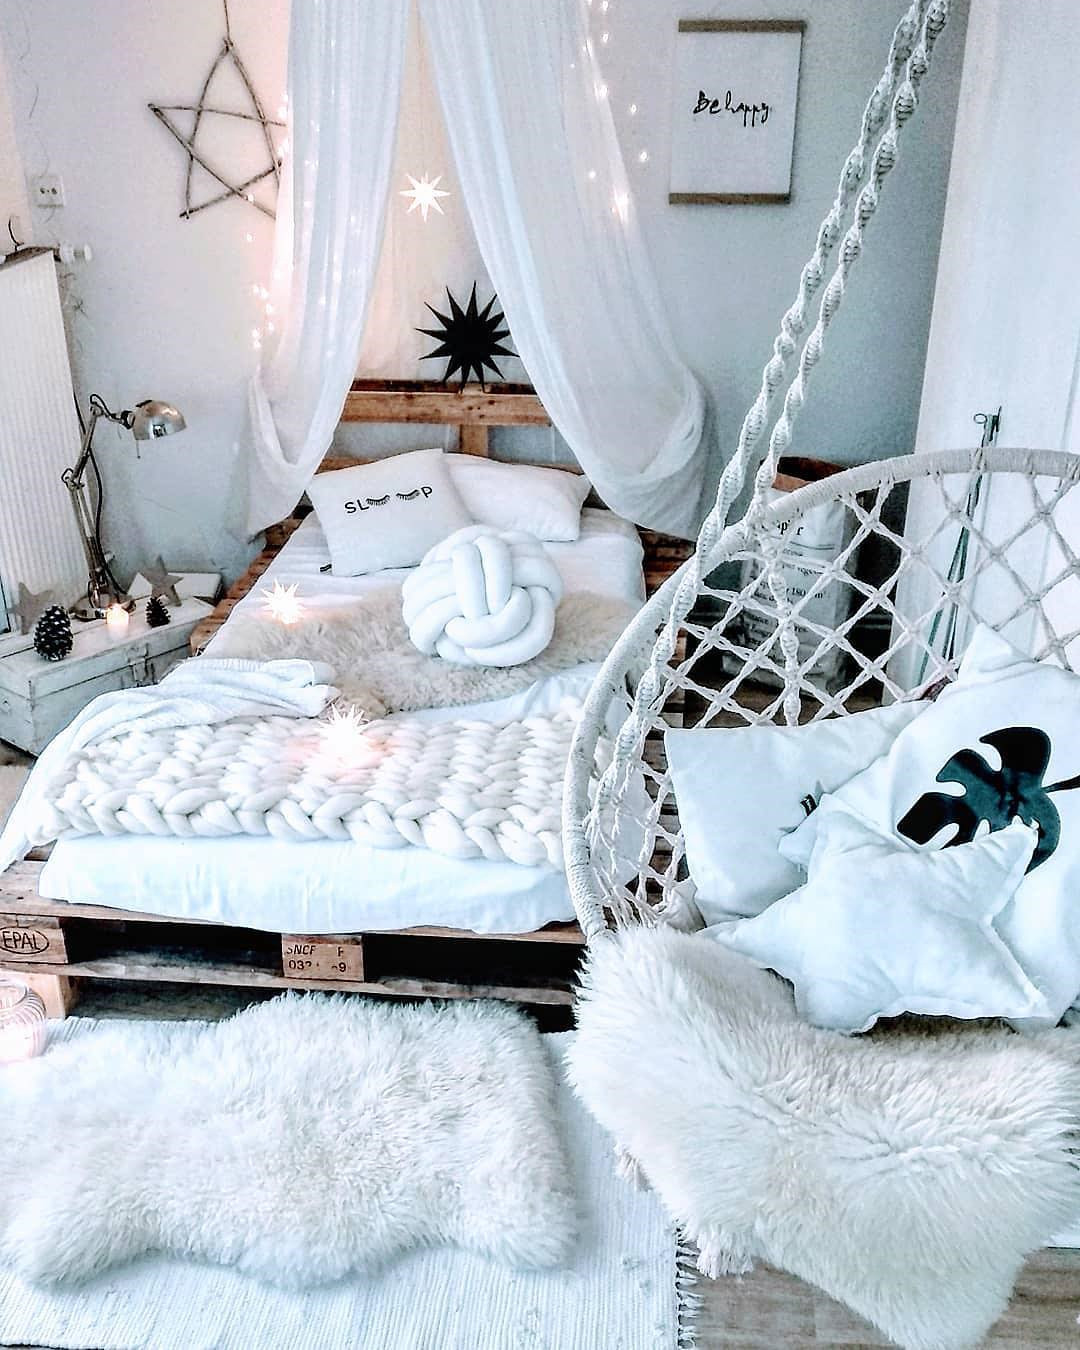 55 Creative Bohemian Bedroom Decor Ideas #dormroom #dormroomdecor #collegedormroom